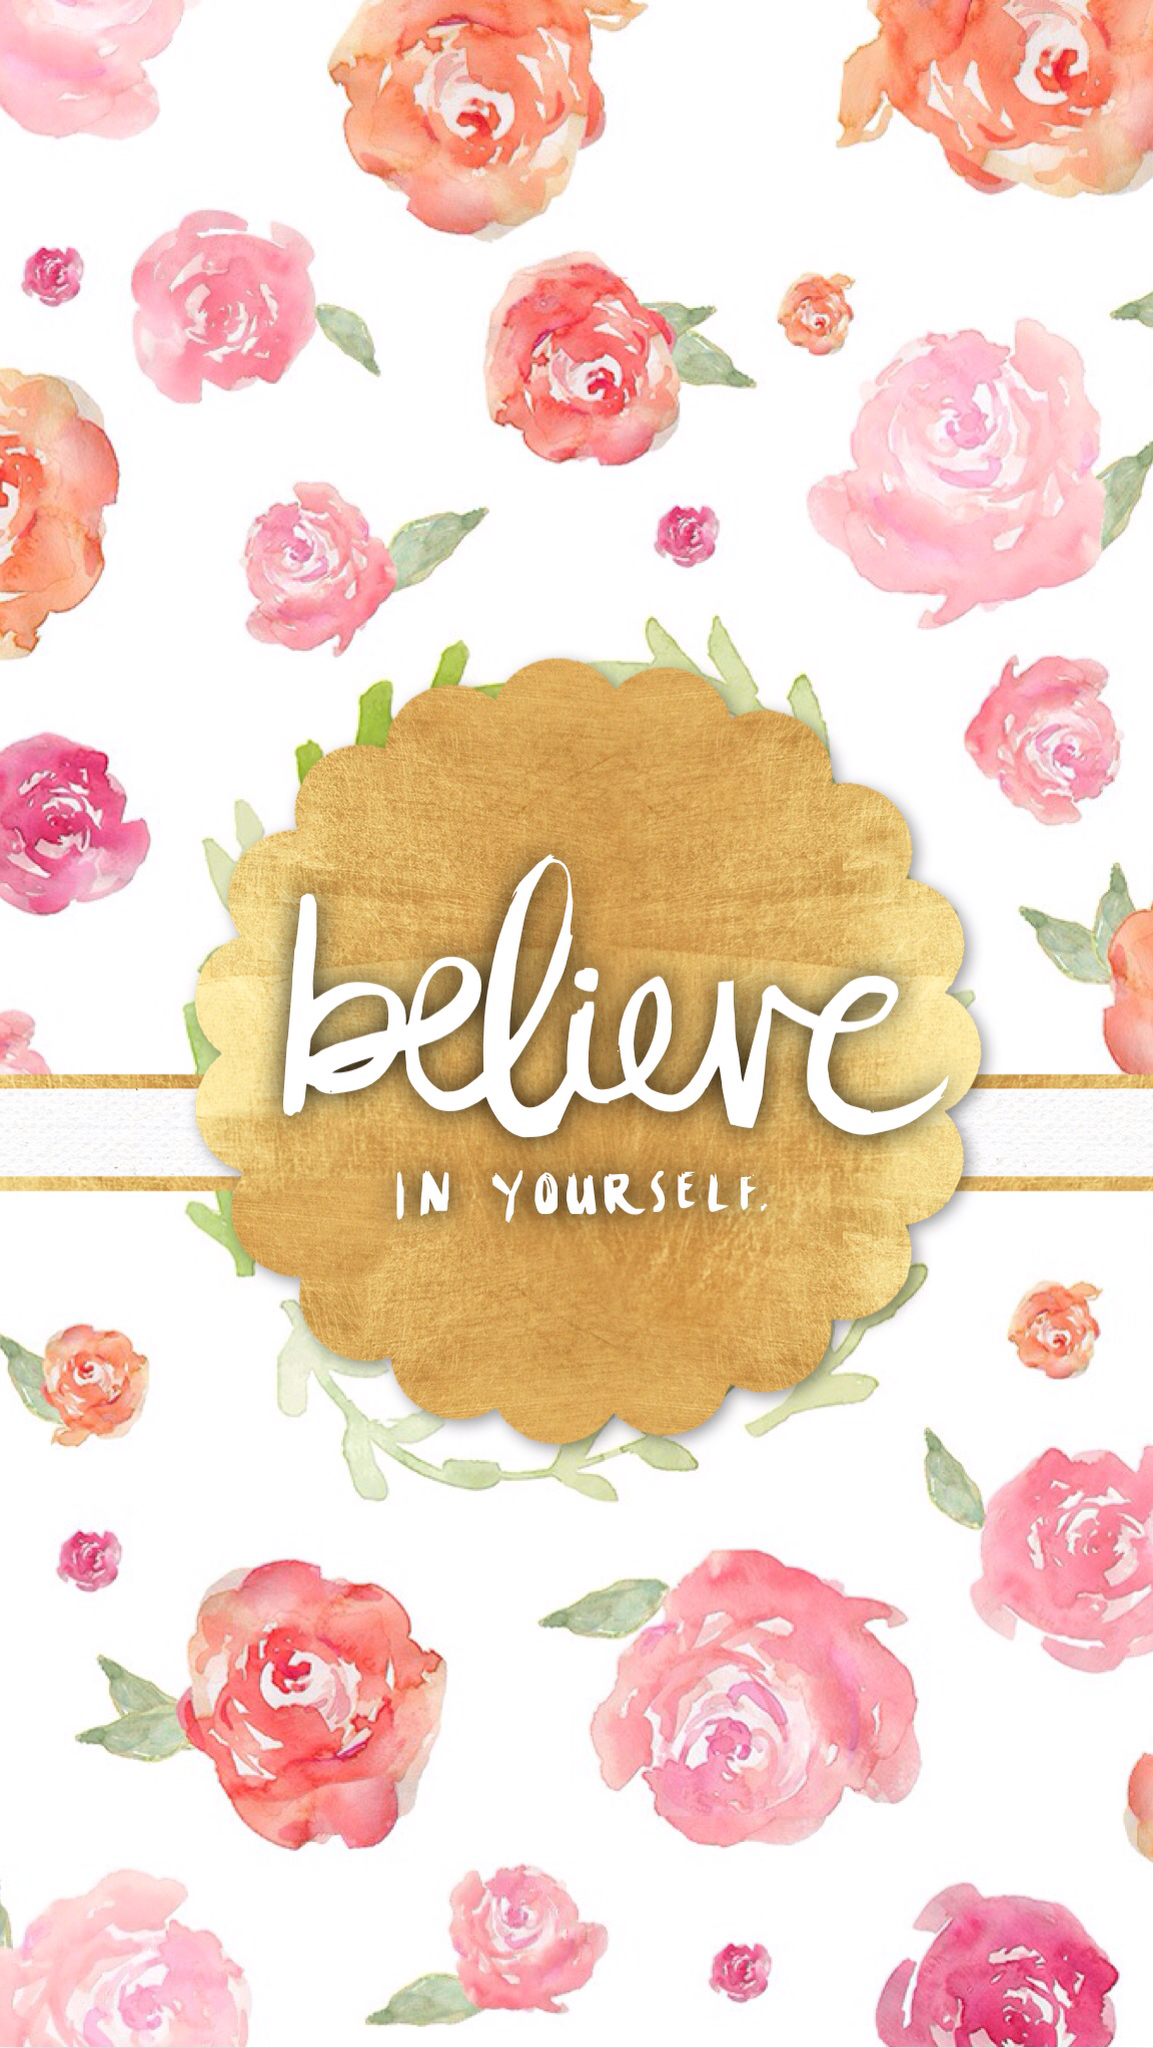 Believe-in-yourself-wallpaper-wp5803938